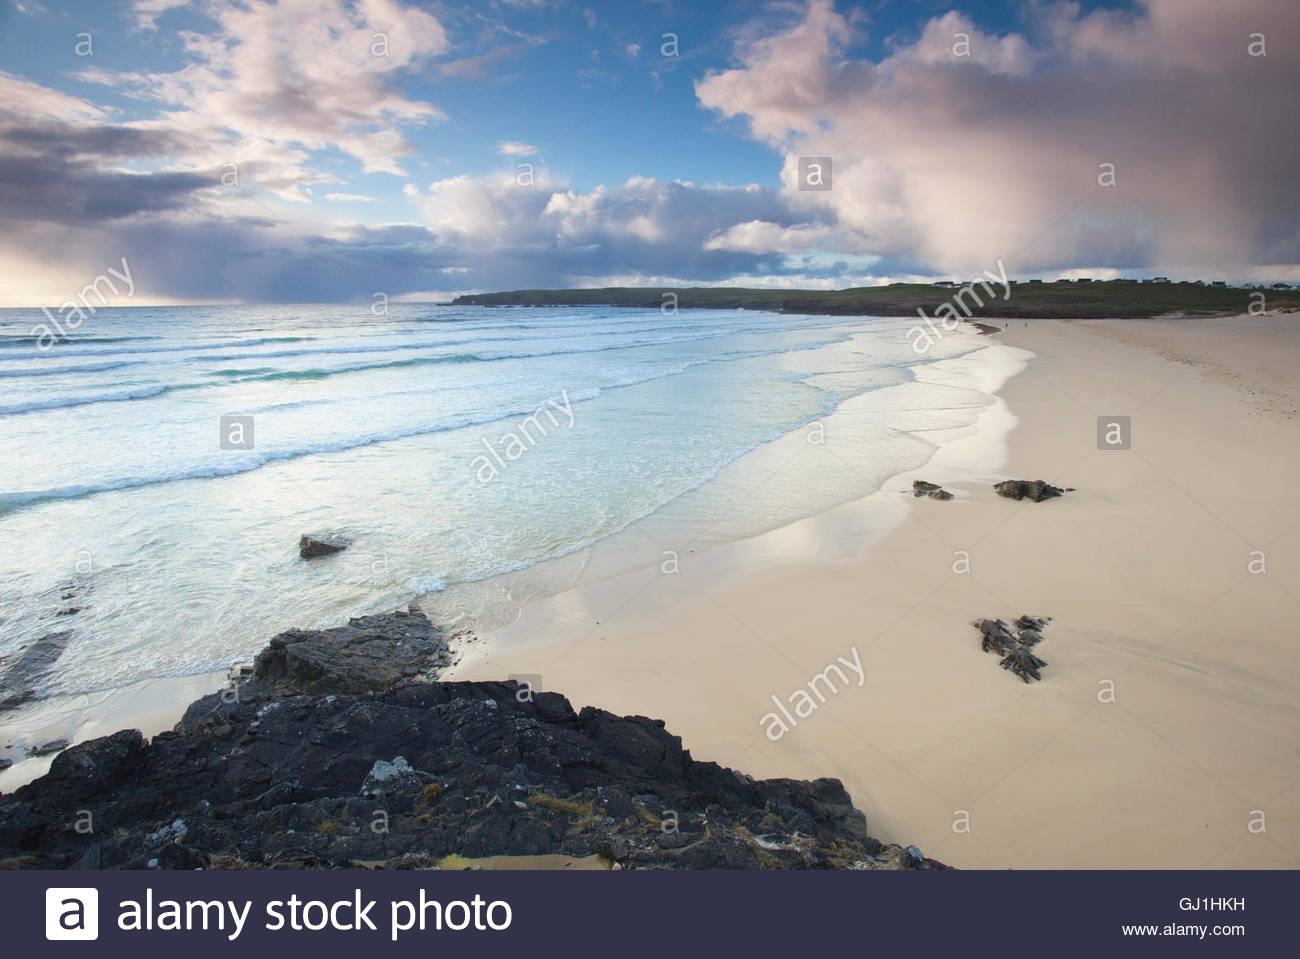 The empty white beach of Traigh Shanndaigh, near Eoropie, Isle of Lewis, Outer Hebrides, Scotland. Stock Photo